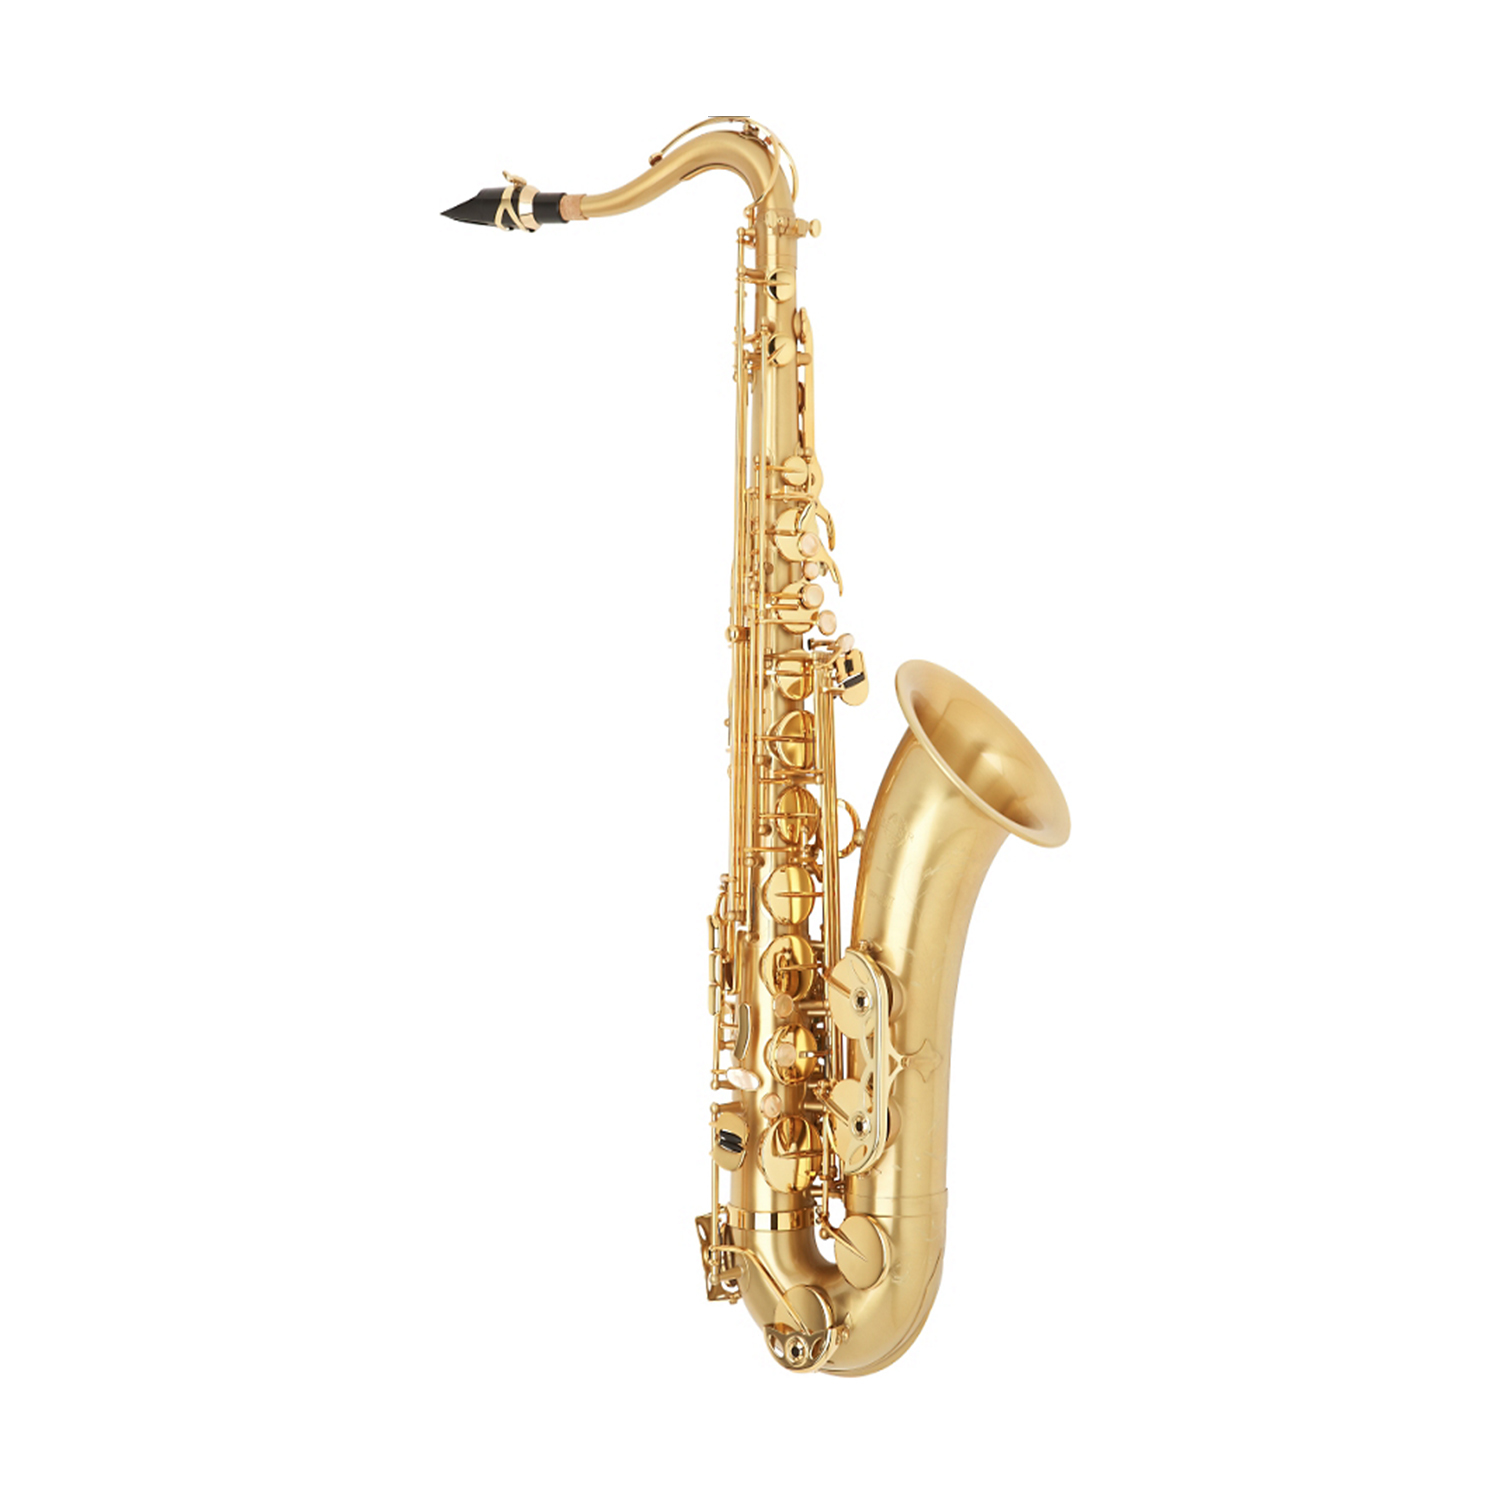 Selmer (Paris) Jubilee Series III Tenor Saxophone - Matte Finish